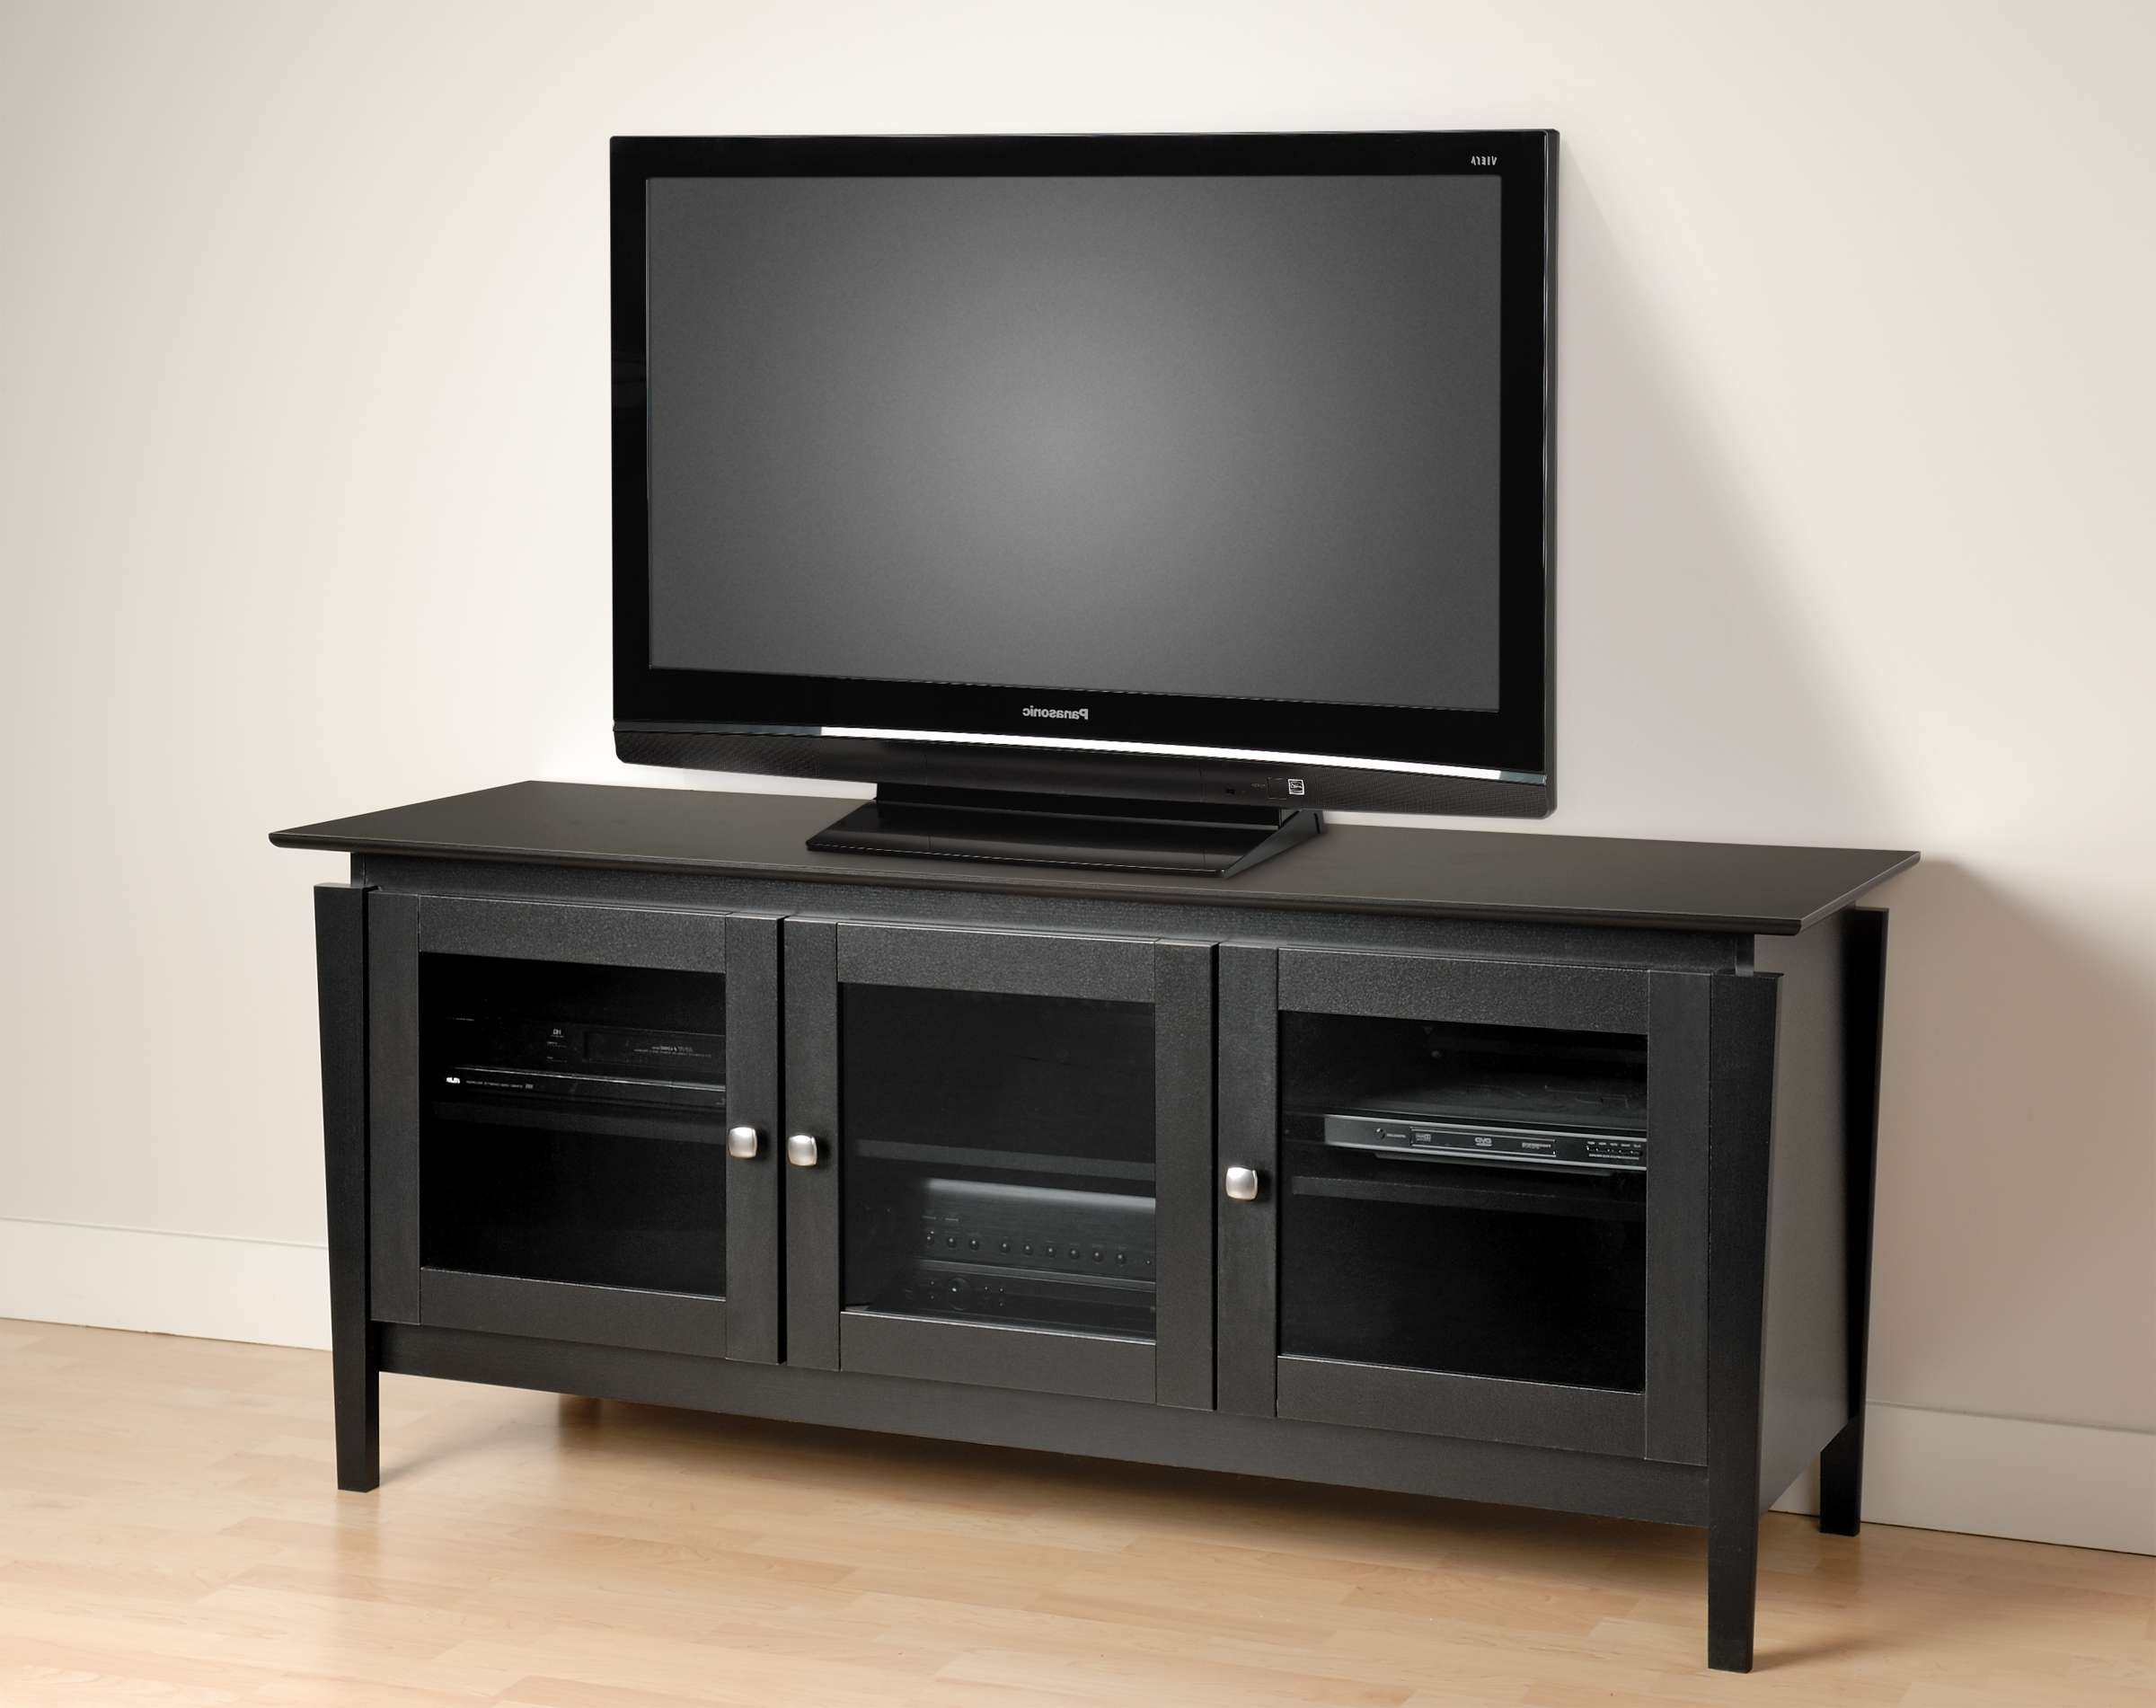 Modern Black Stained Oak Wood Media Cabinet With Glass Doors Of Pertaining To Wooden Tv Cabinets With Glass Doors (View 11 of 20)